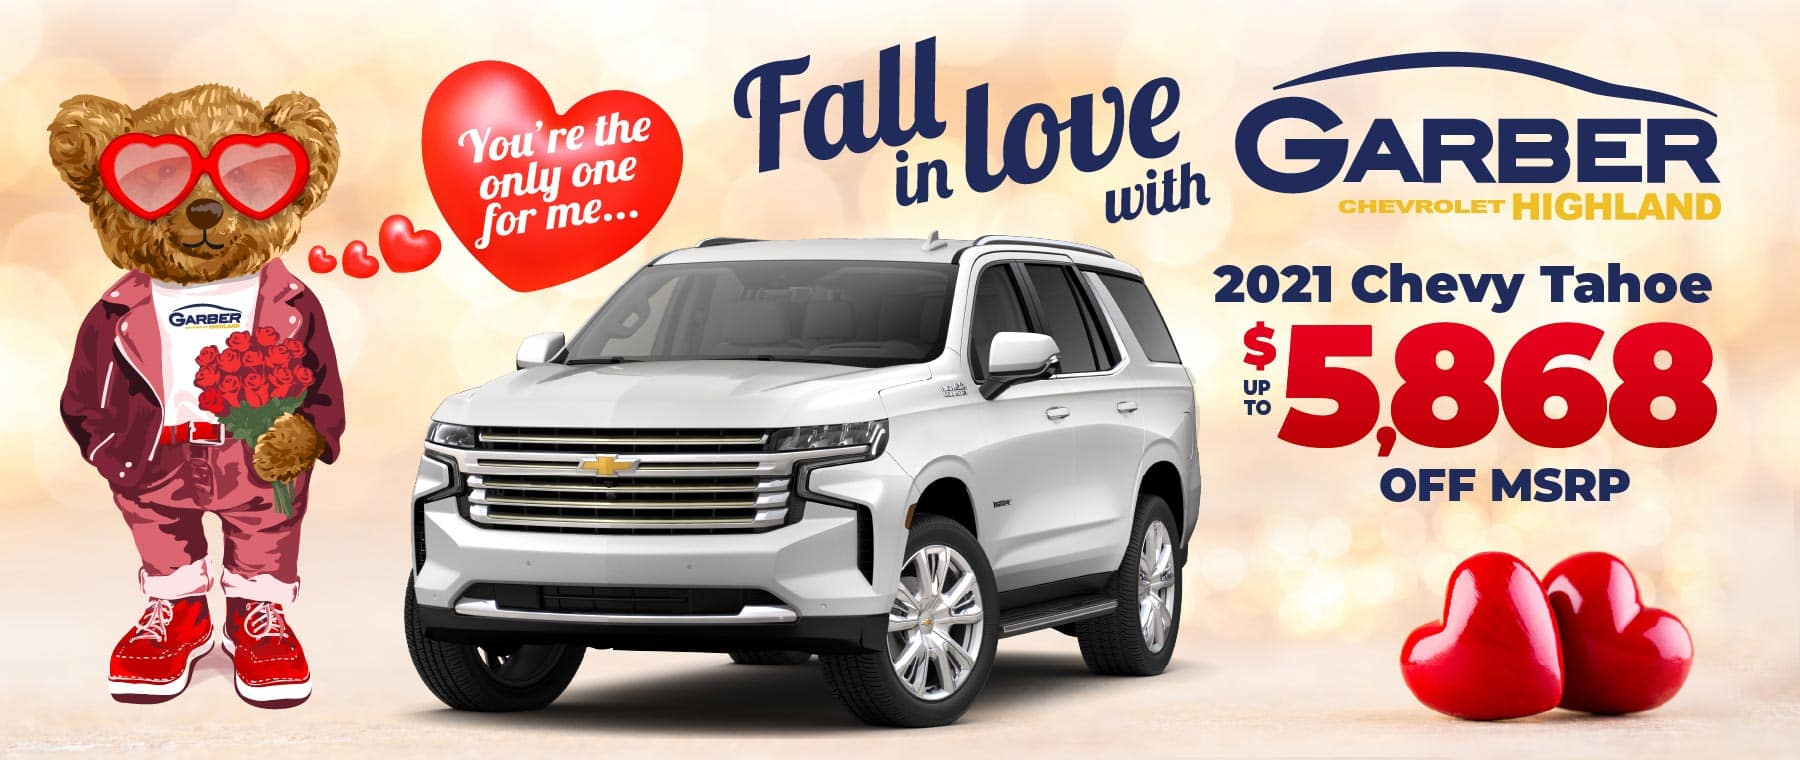 2021 Chevy Tahoe - up to $5868 off MSRP